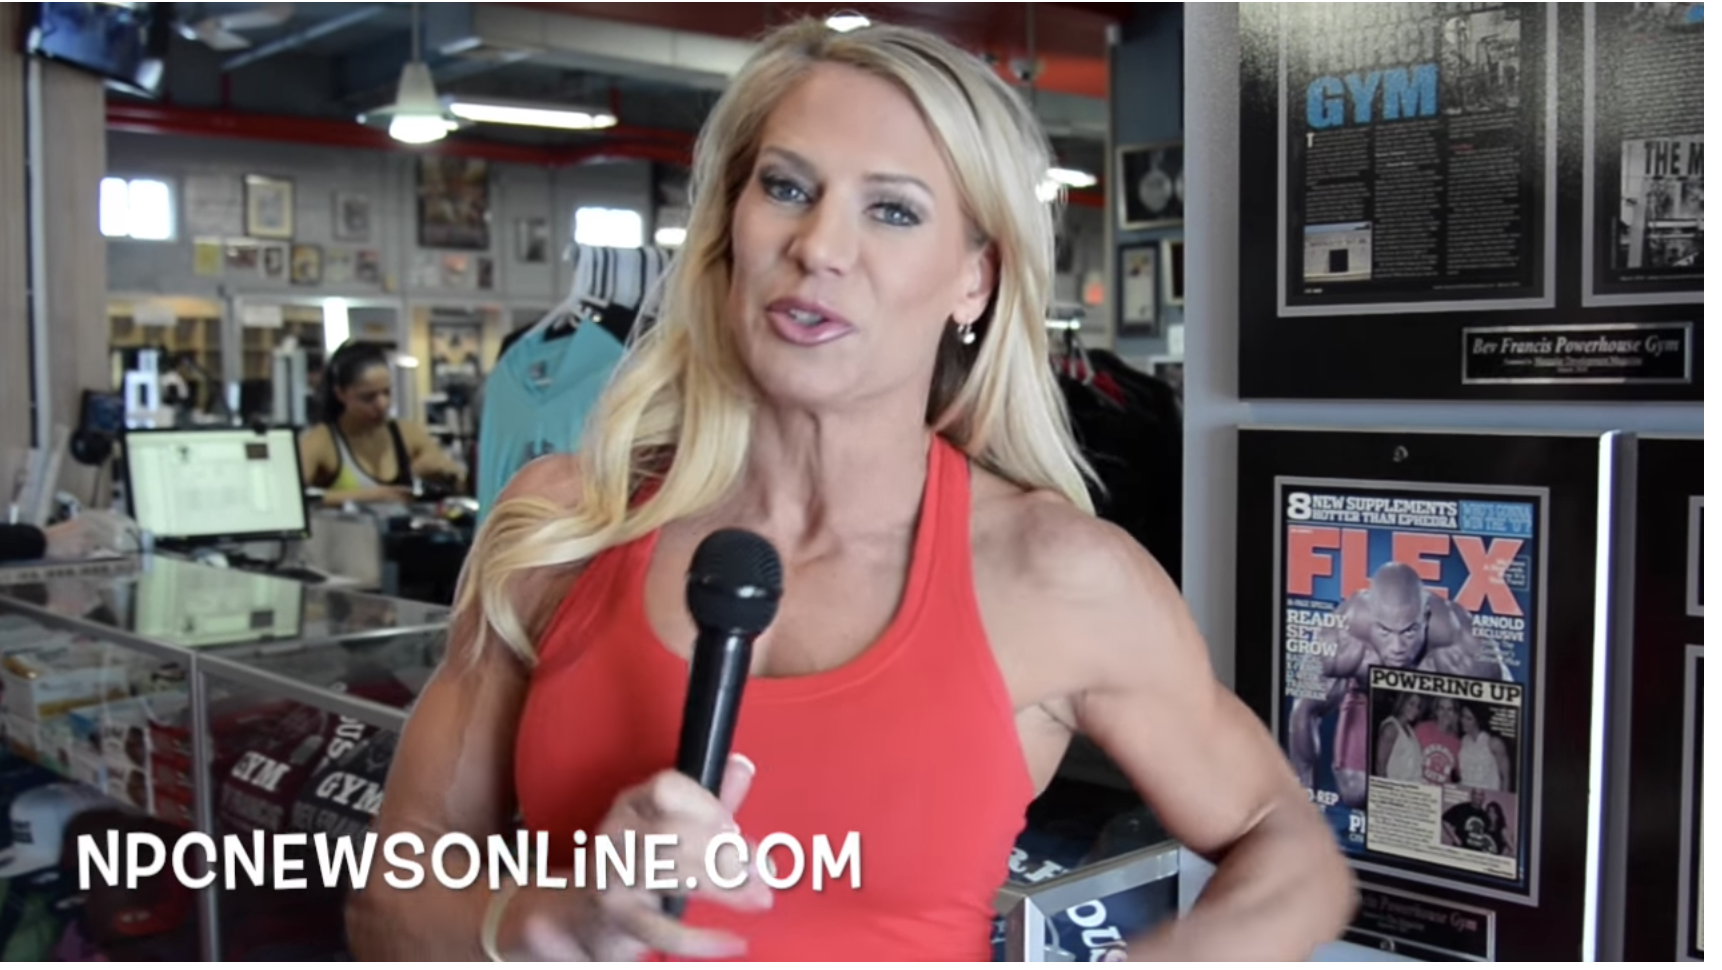 IFBB Fitness Pro Whitney Jones: The Thing I Wish I Knew